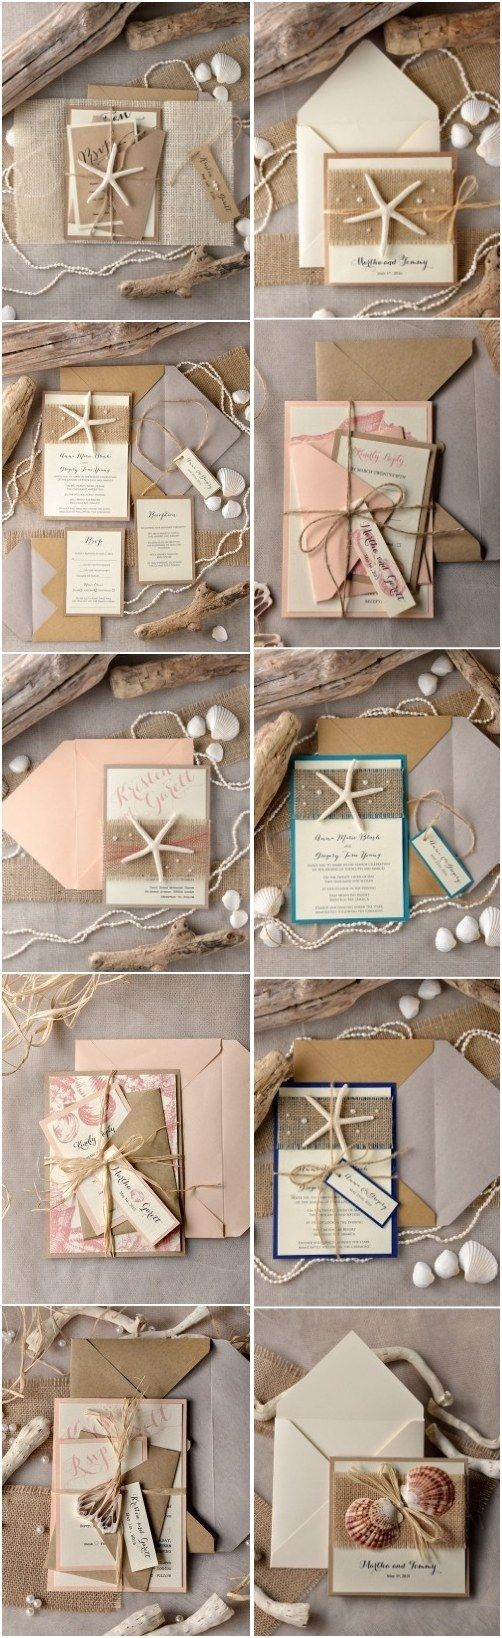 Rustic beach wedding invitations @4LOVEPolkaDots  #beachwedding #rusticwedding #countrywedding #dpf